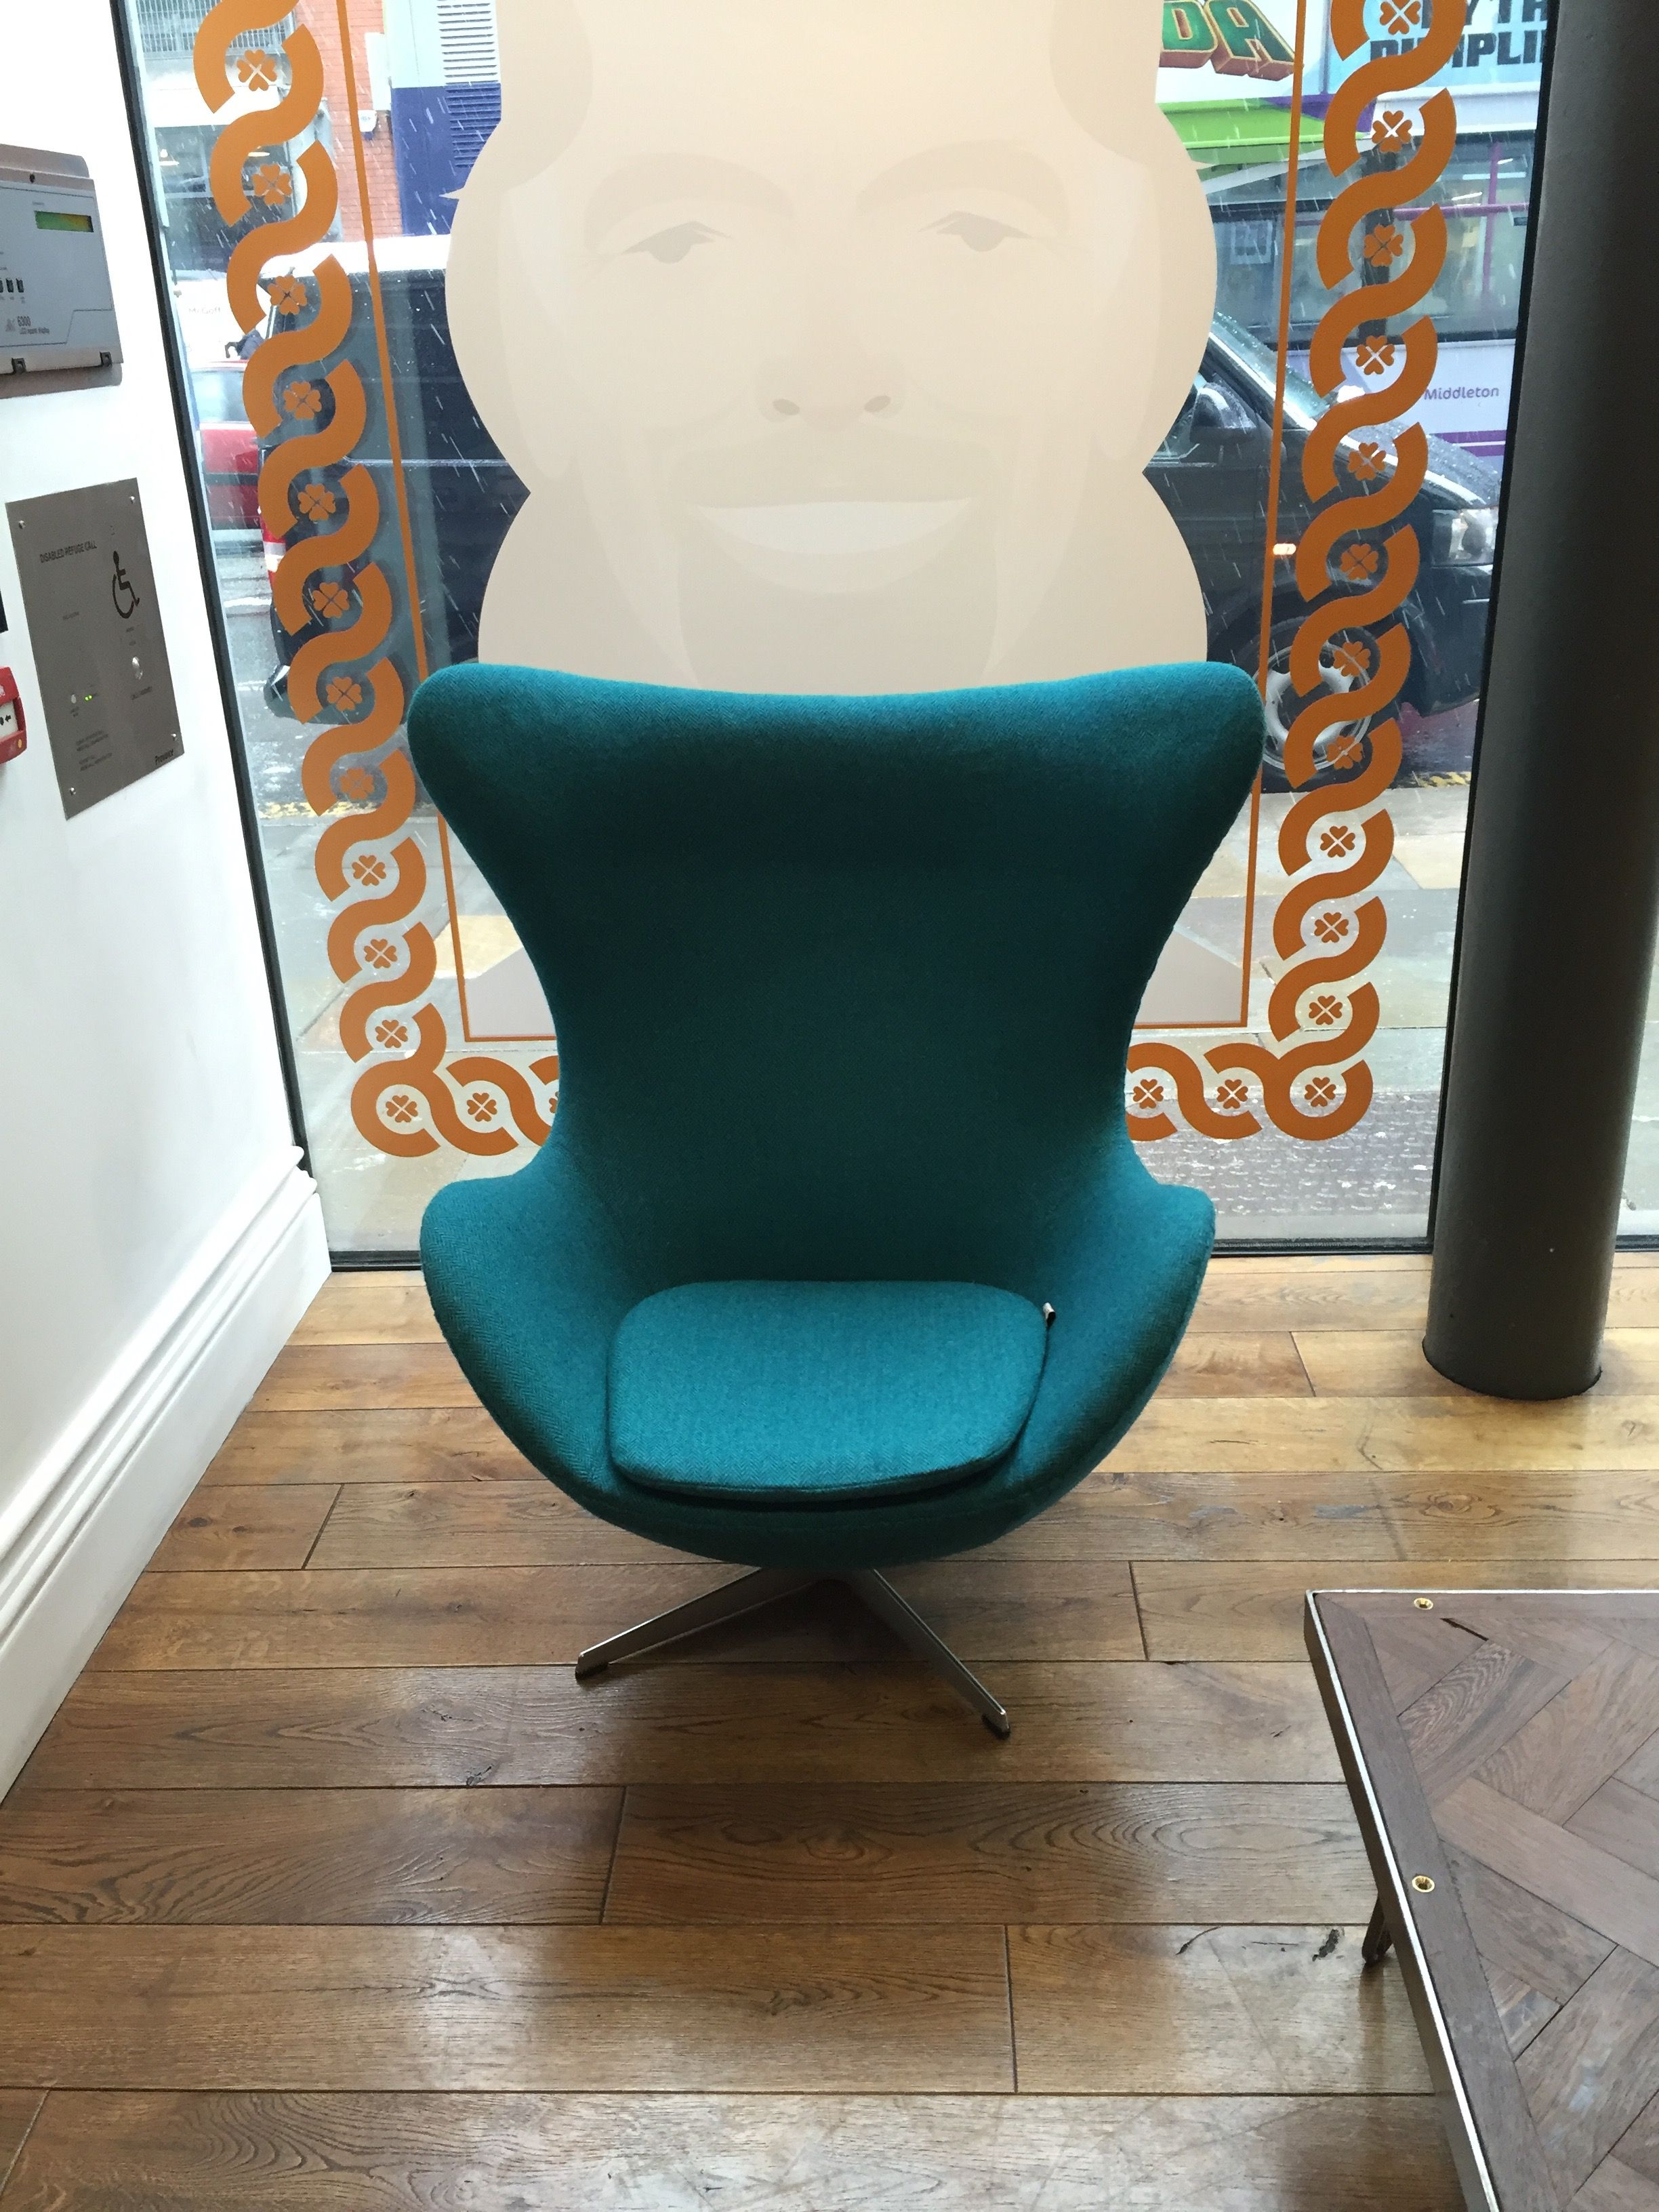 Reupholster Egg Chair Arne Jacobsen Vintage Egg Chair With Harris Tweed Turquoise